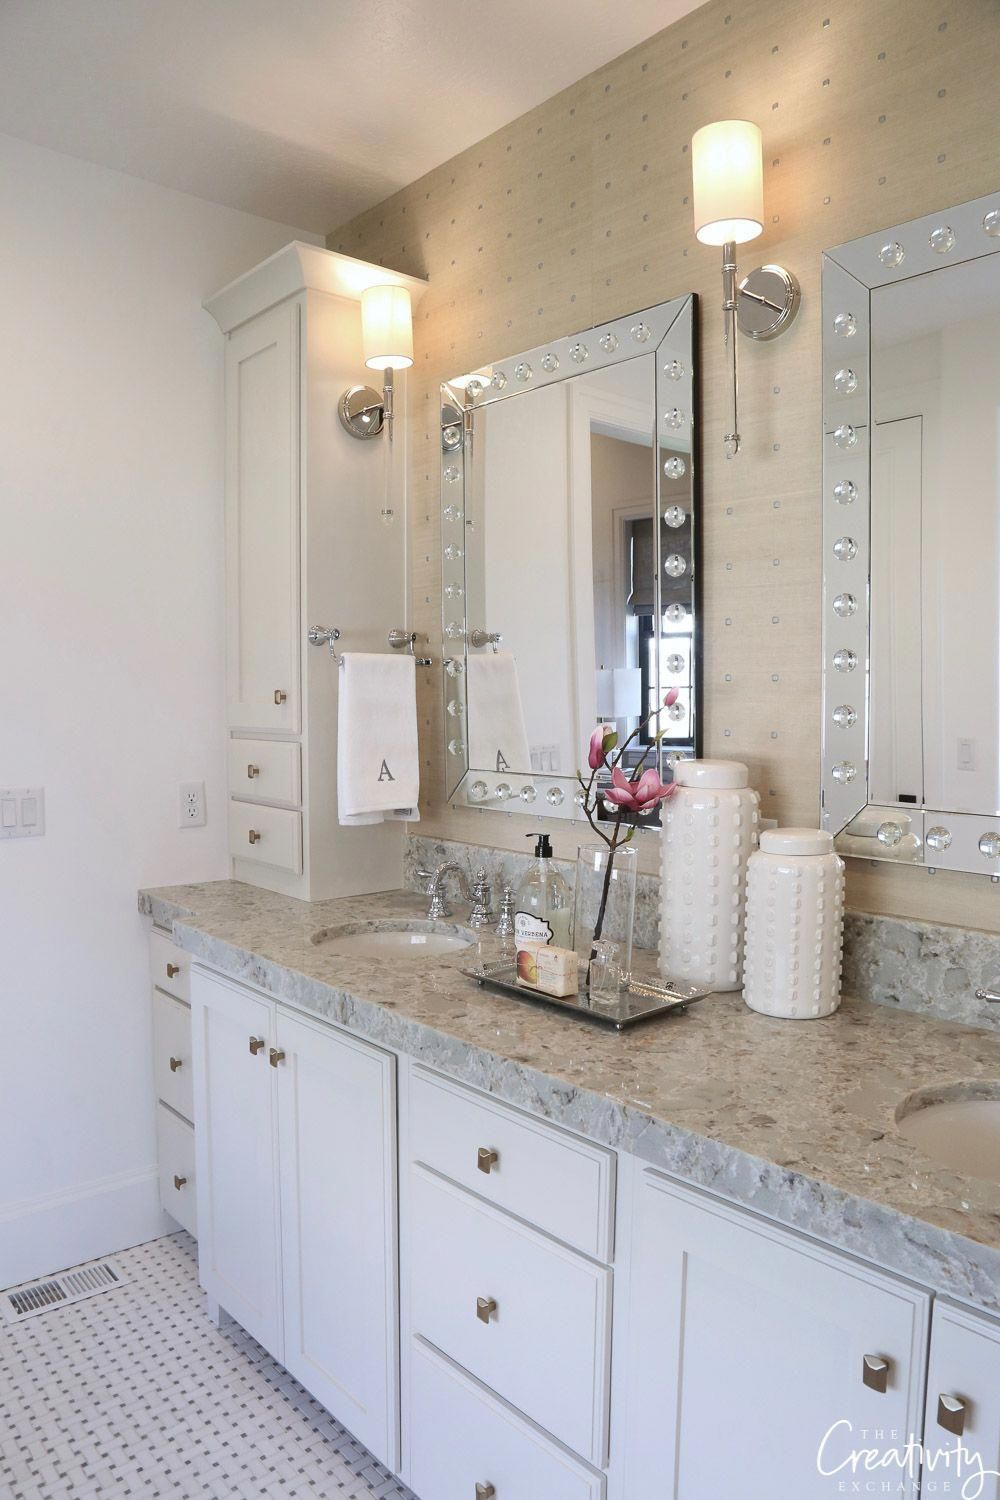 Side Countertop Cabinet With Hand Towel Holders For Master Bath